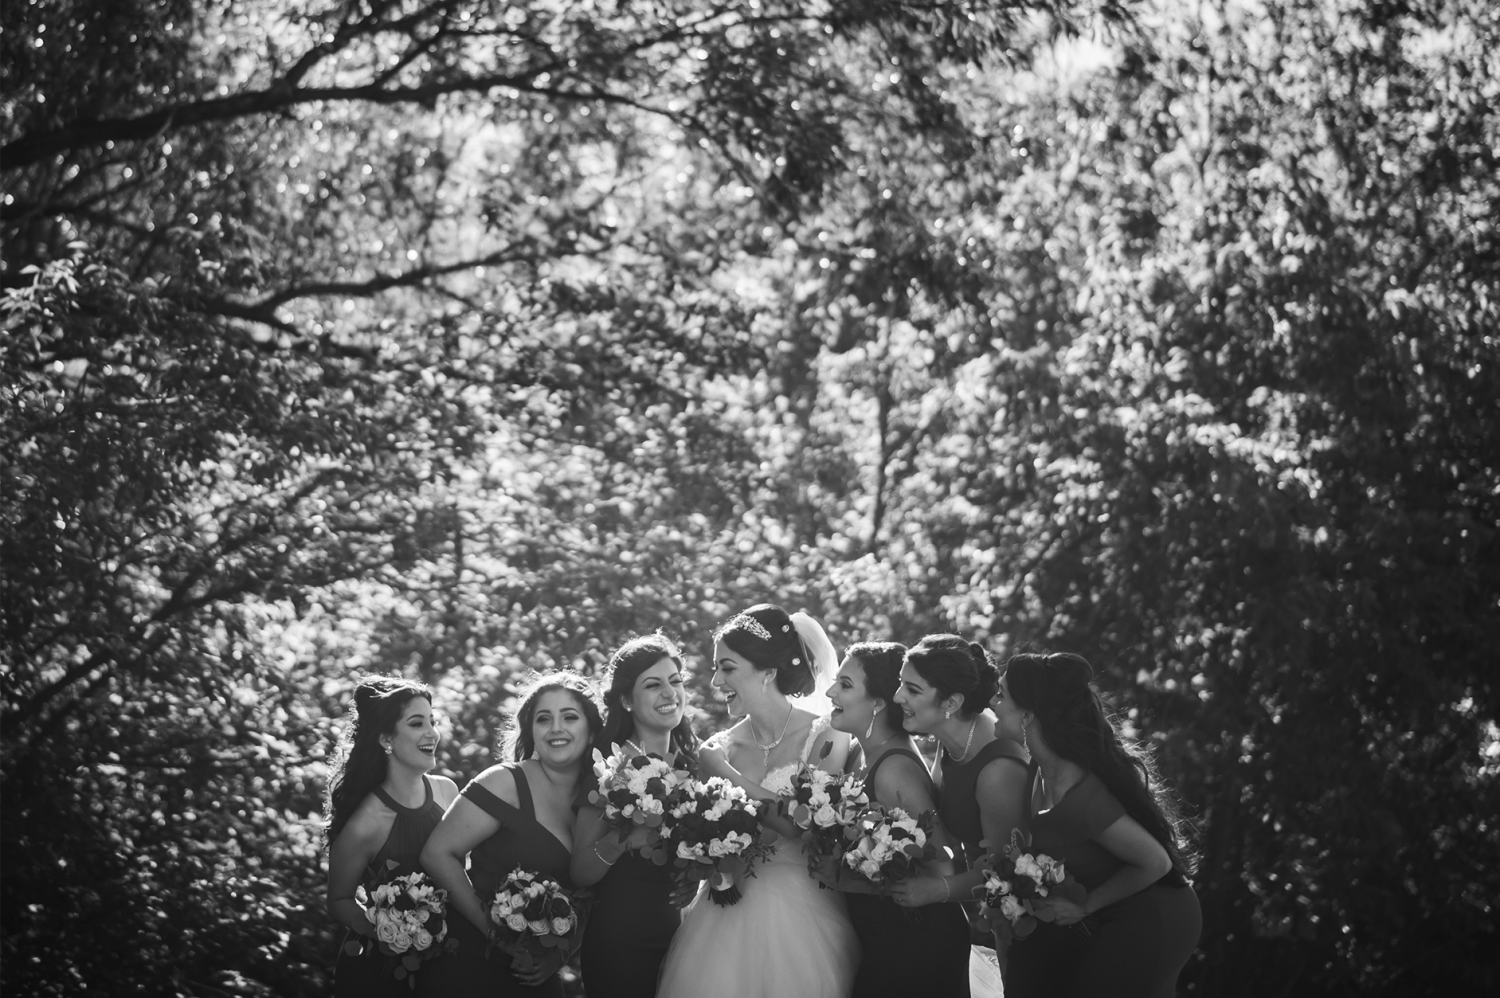 A bride and their bridesmaids grouped together outside in the Paradise Banquet Halls Garden venues.